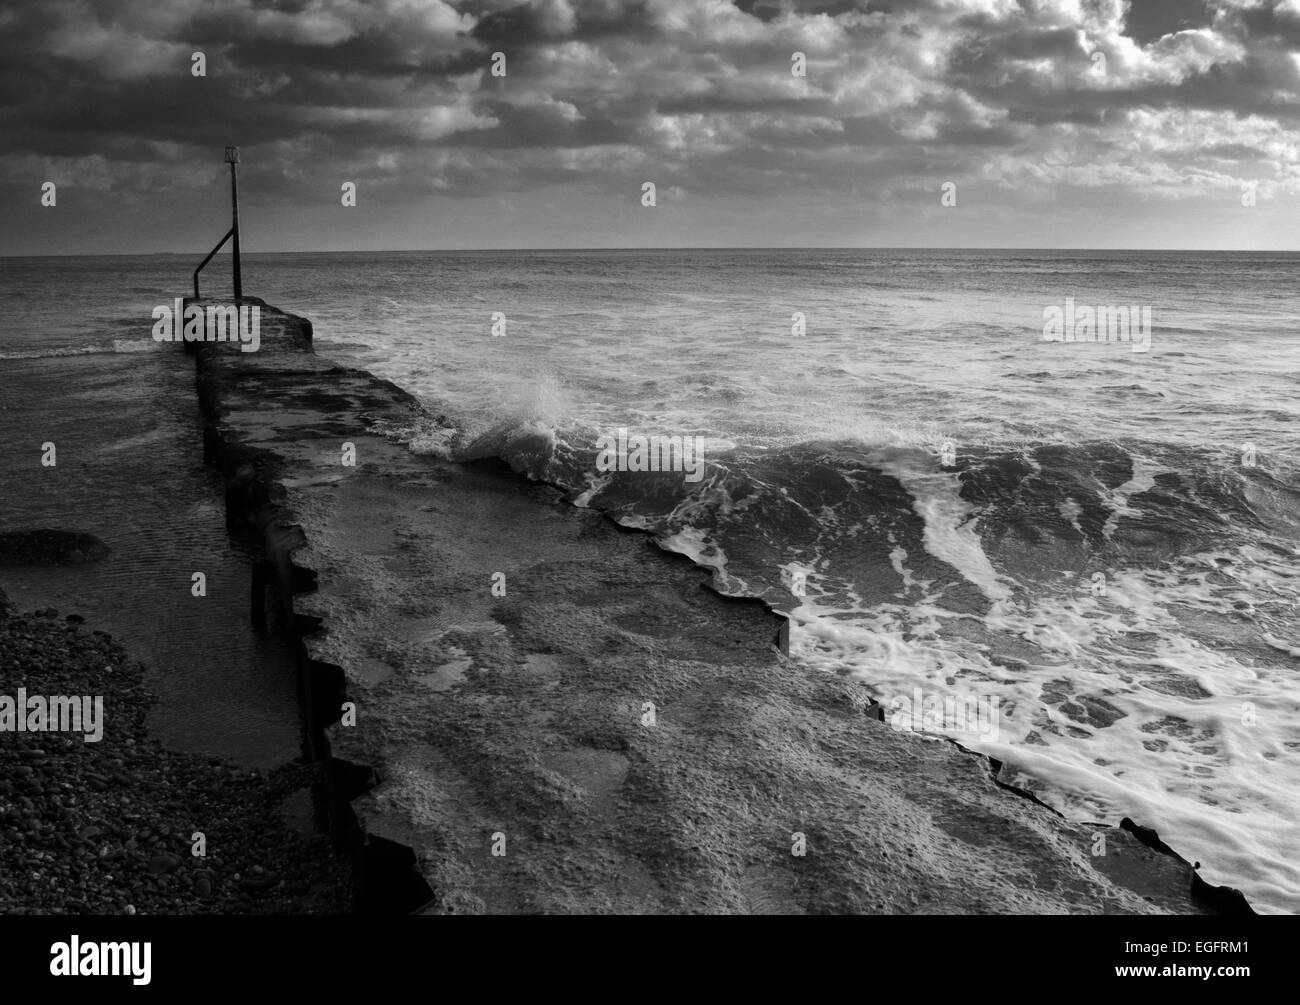 Sea defence at Sidmouth, Devon, England - Stock Image